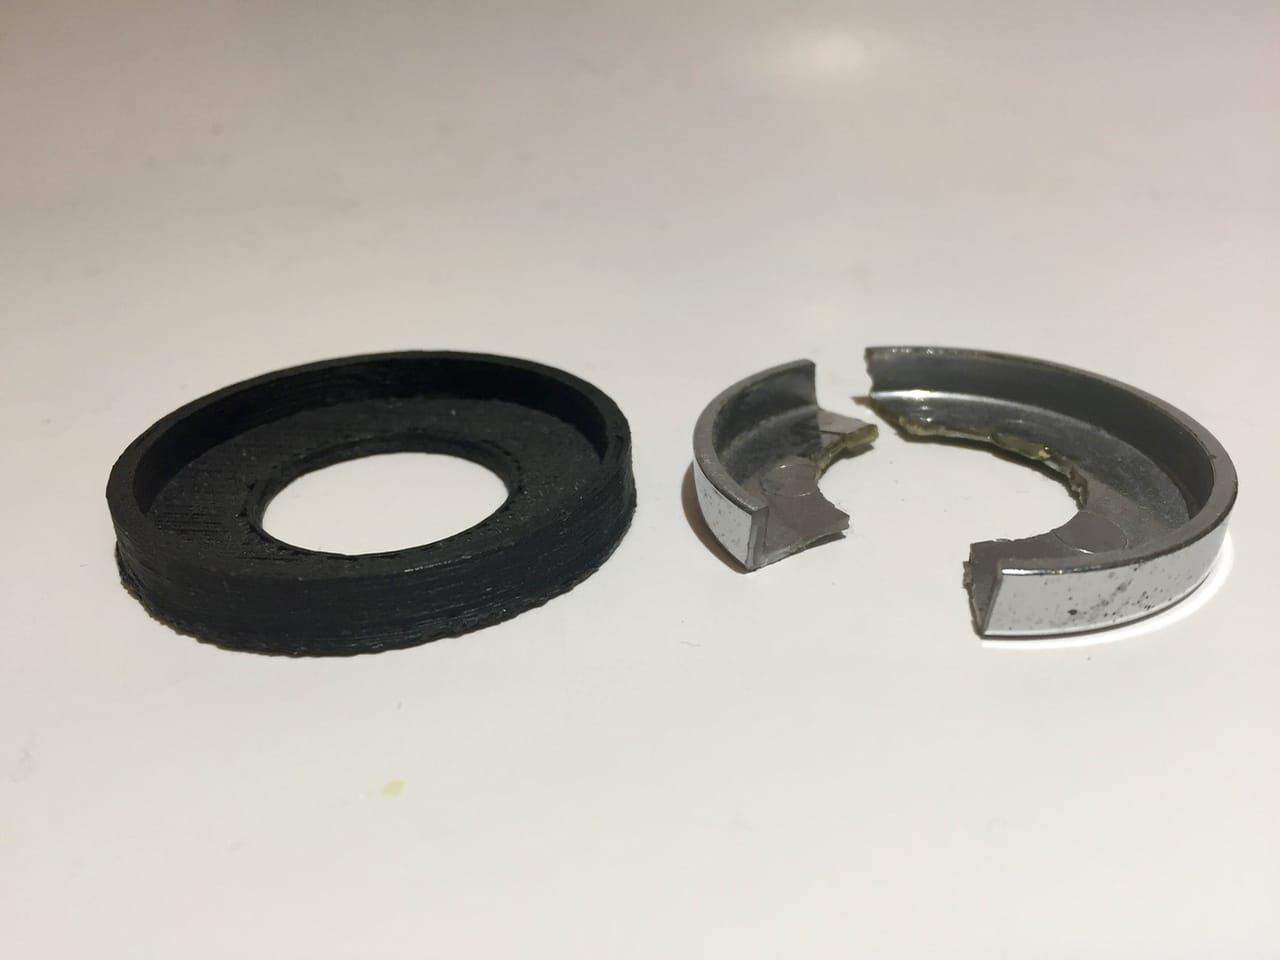 The Practicality of 3D Printing Your Own Spare Parts